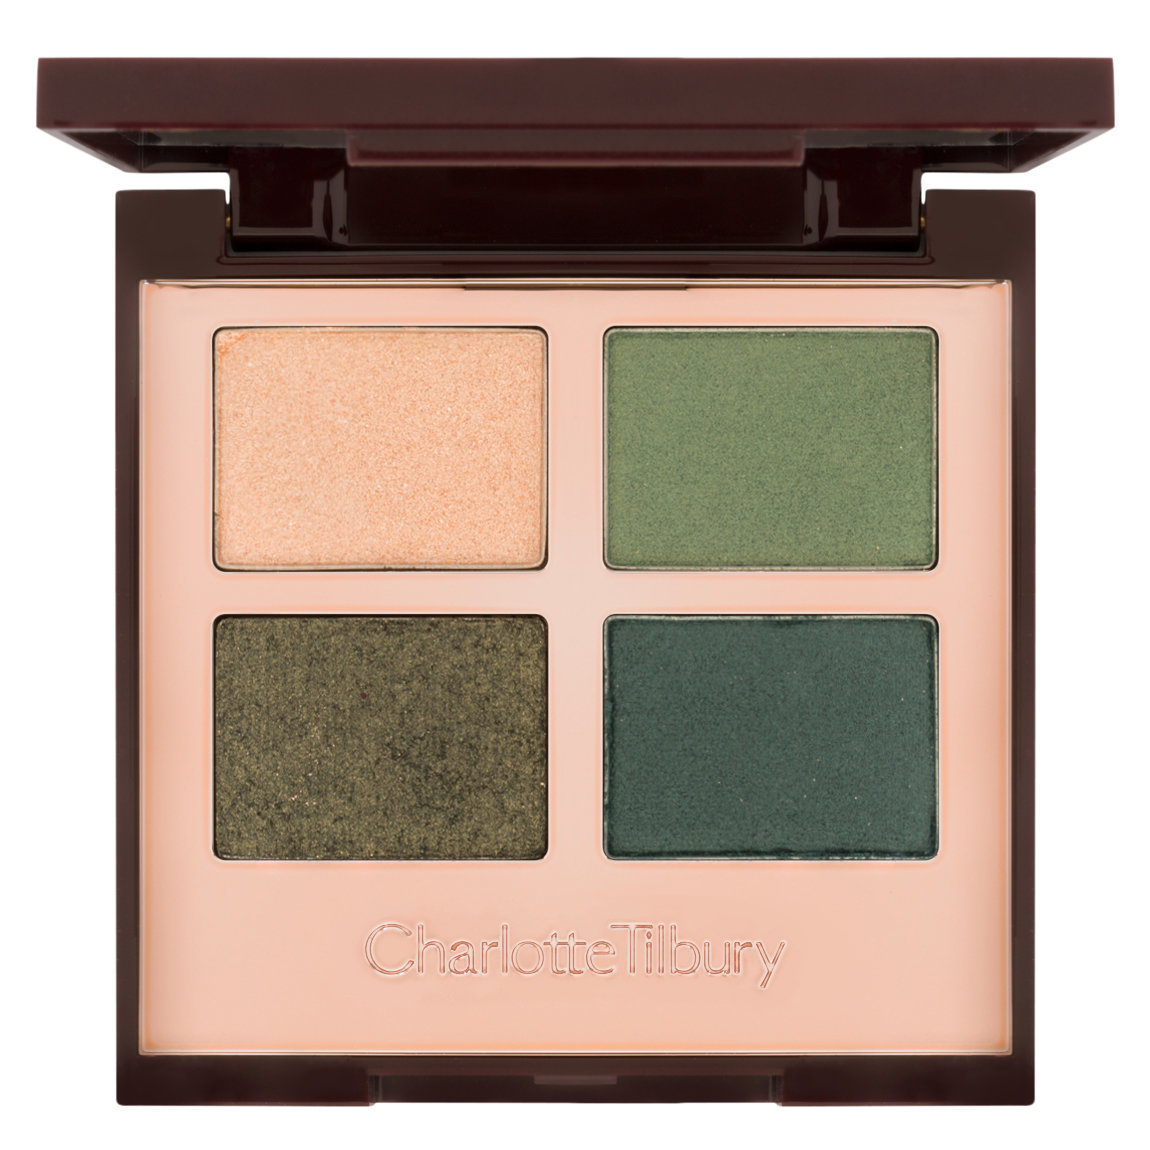 Charlotte Tilbury Luxury Palette The Rebel product swatch.